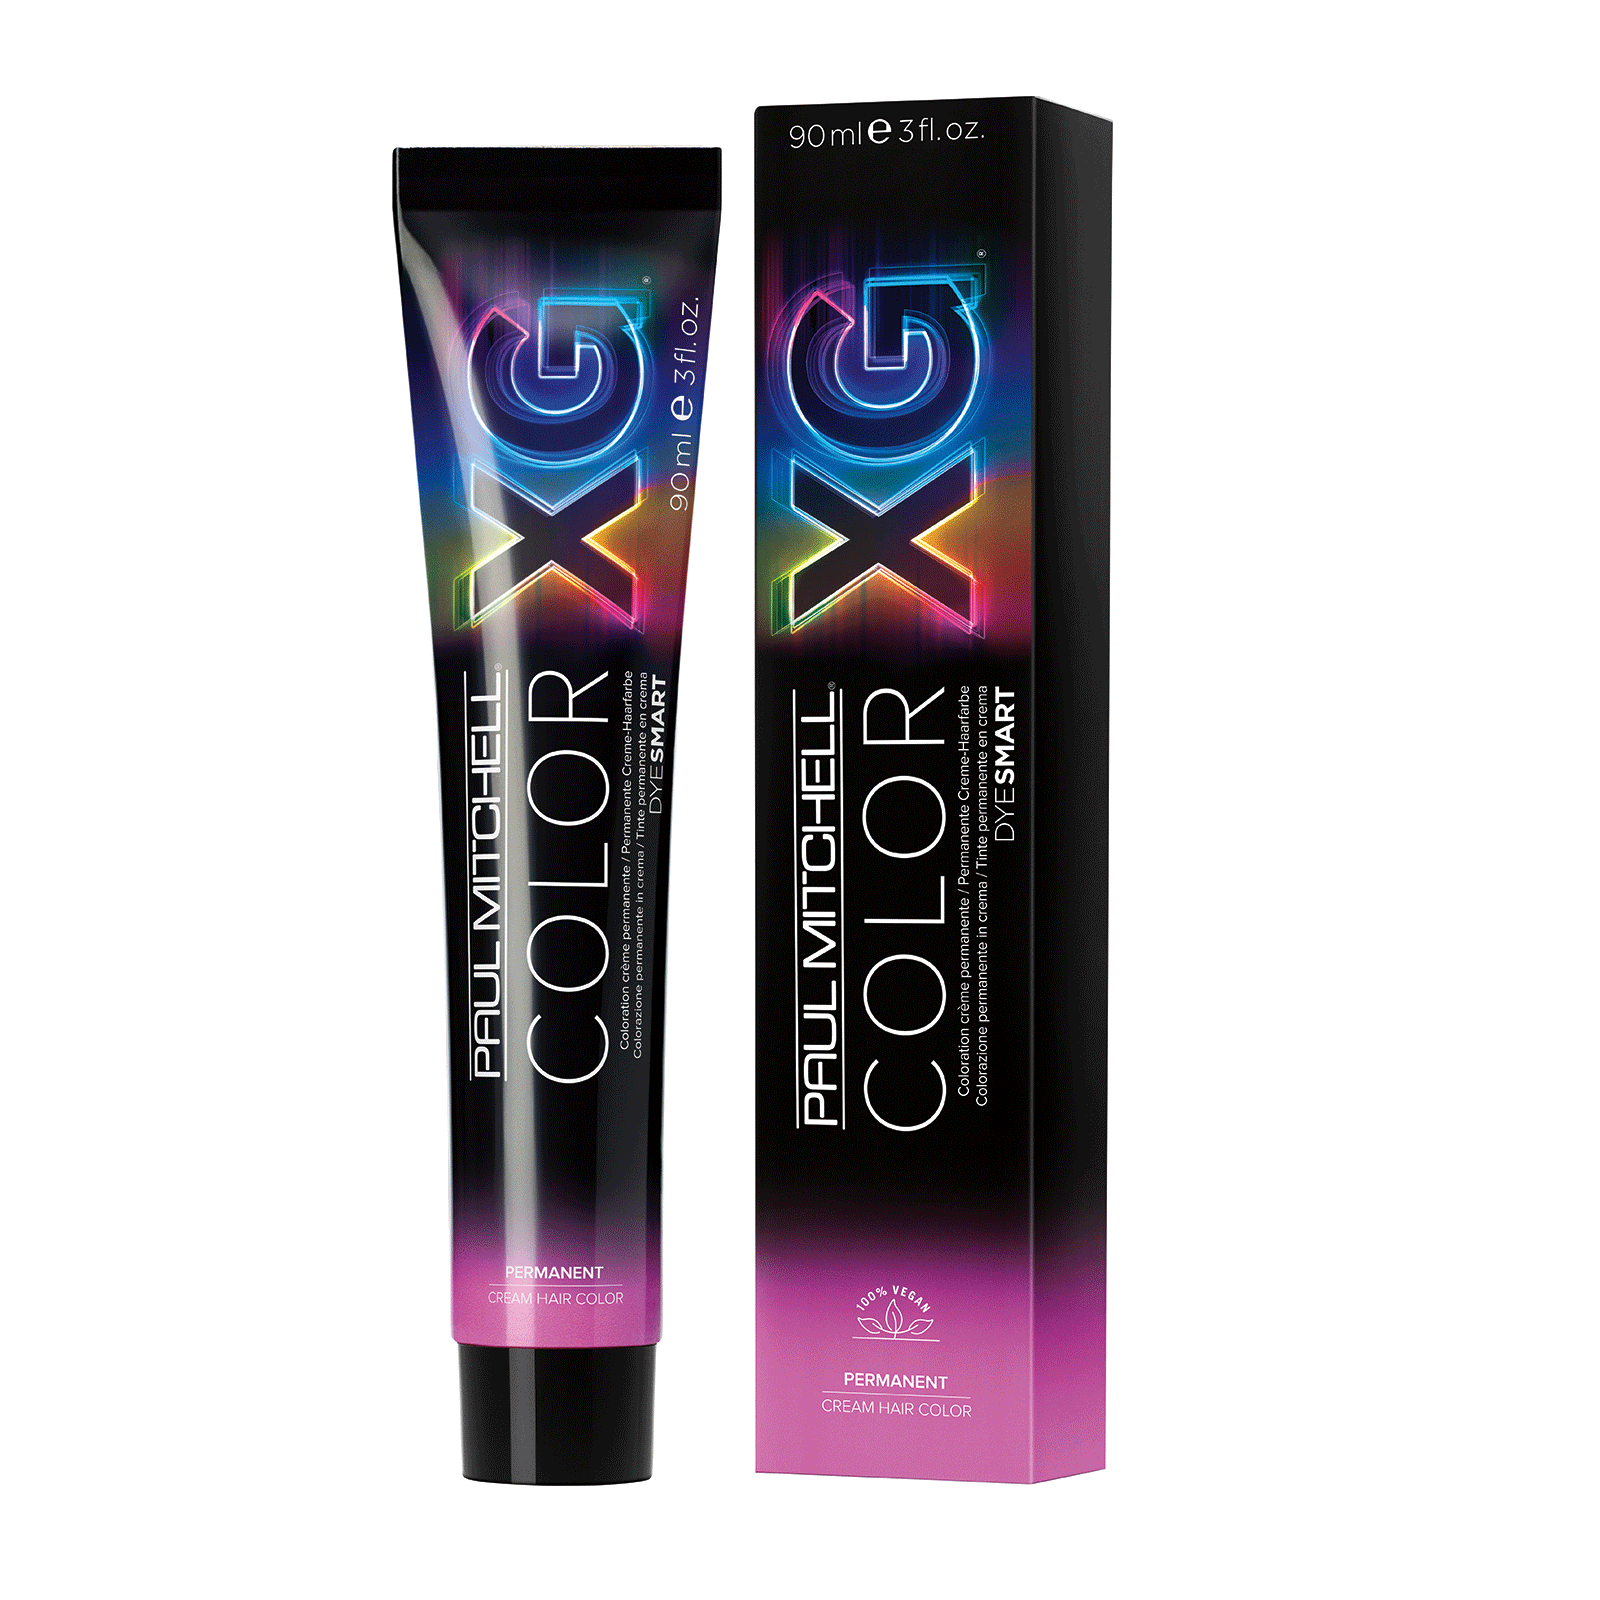 The Color Xg Permanent Hair